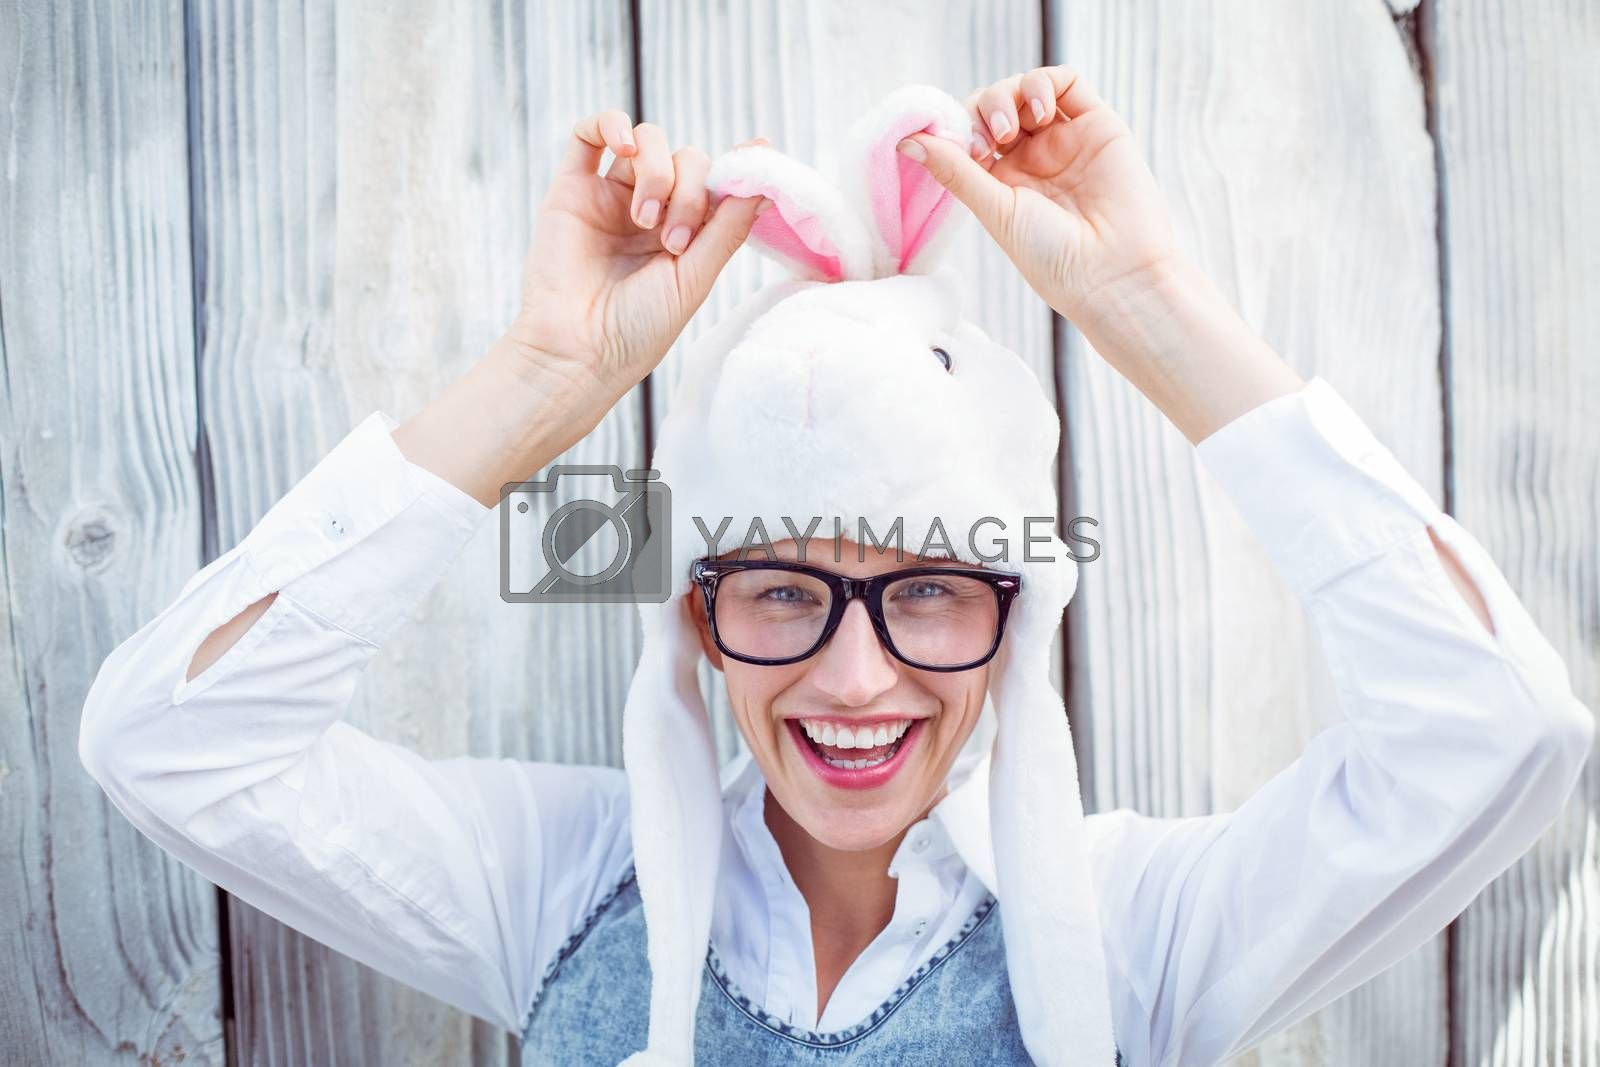 Pretty blonde woman smiling at the camera wearing funny hat on wooden background